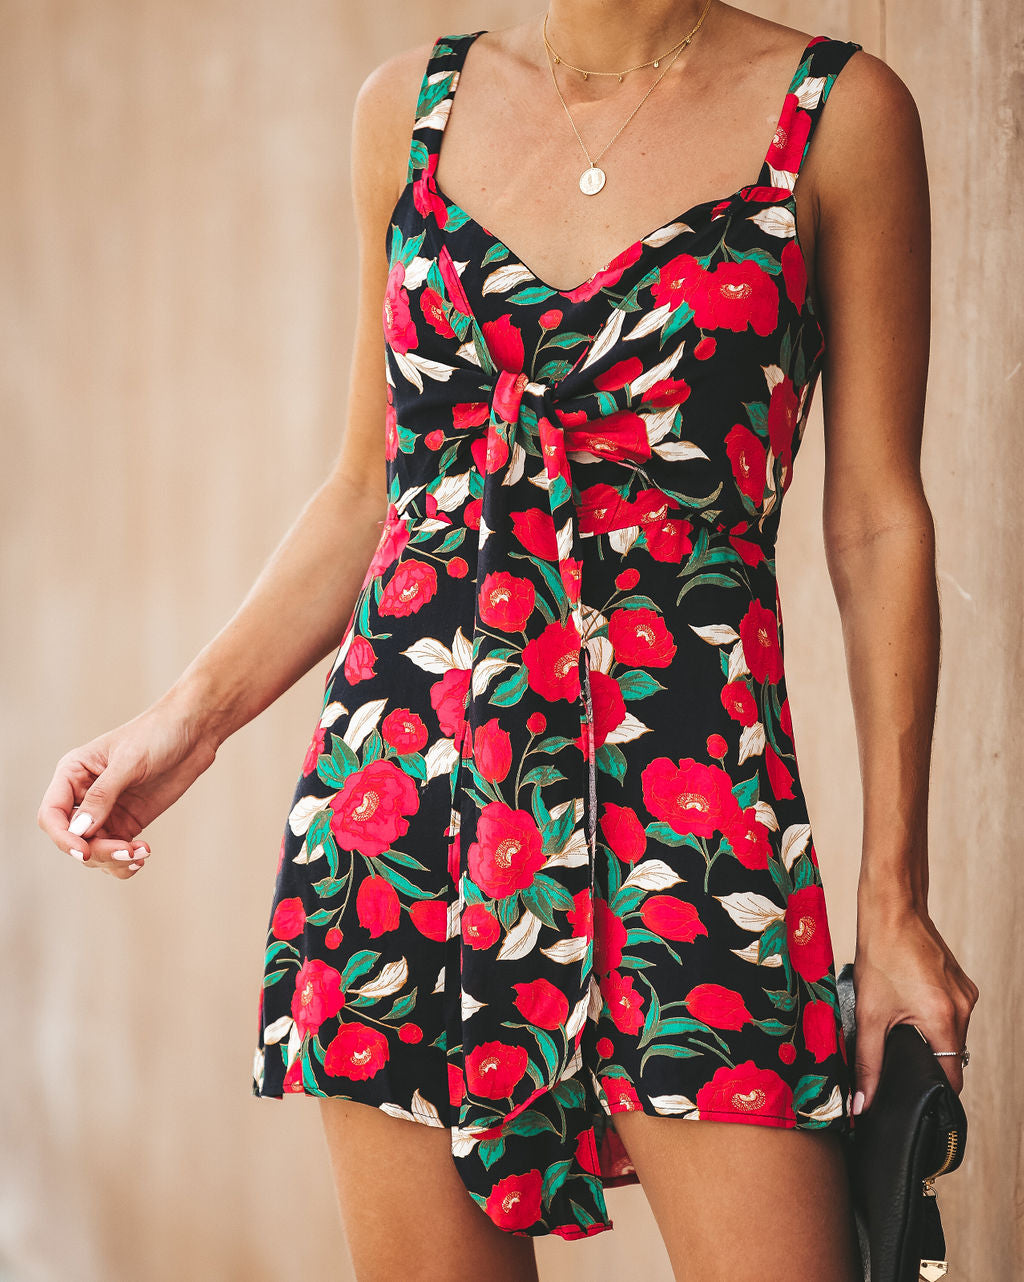 9271c4143b4 A Rose By Any Other Name Tie Romper - FINAL SALE – VICI